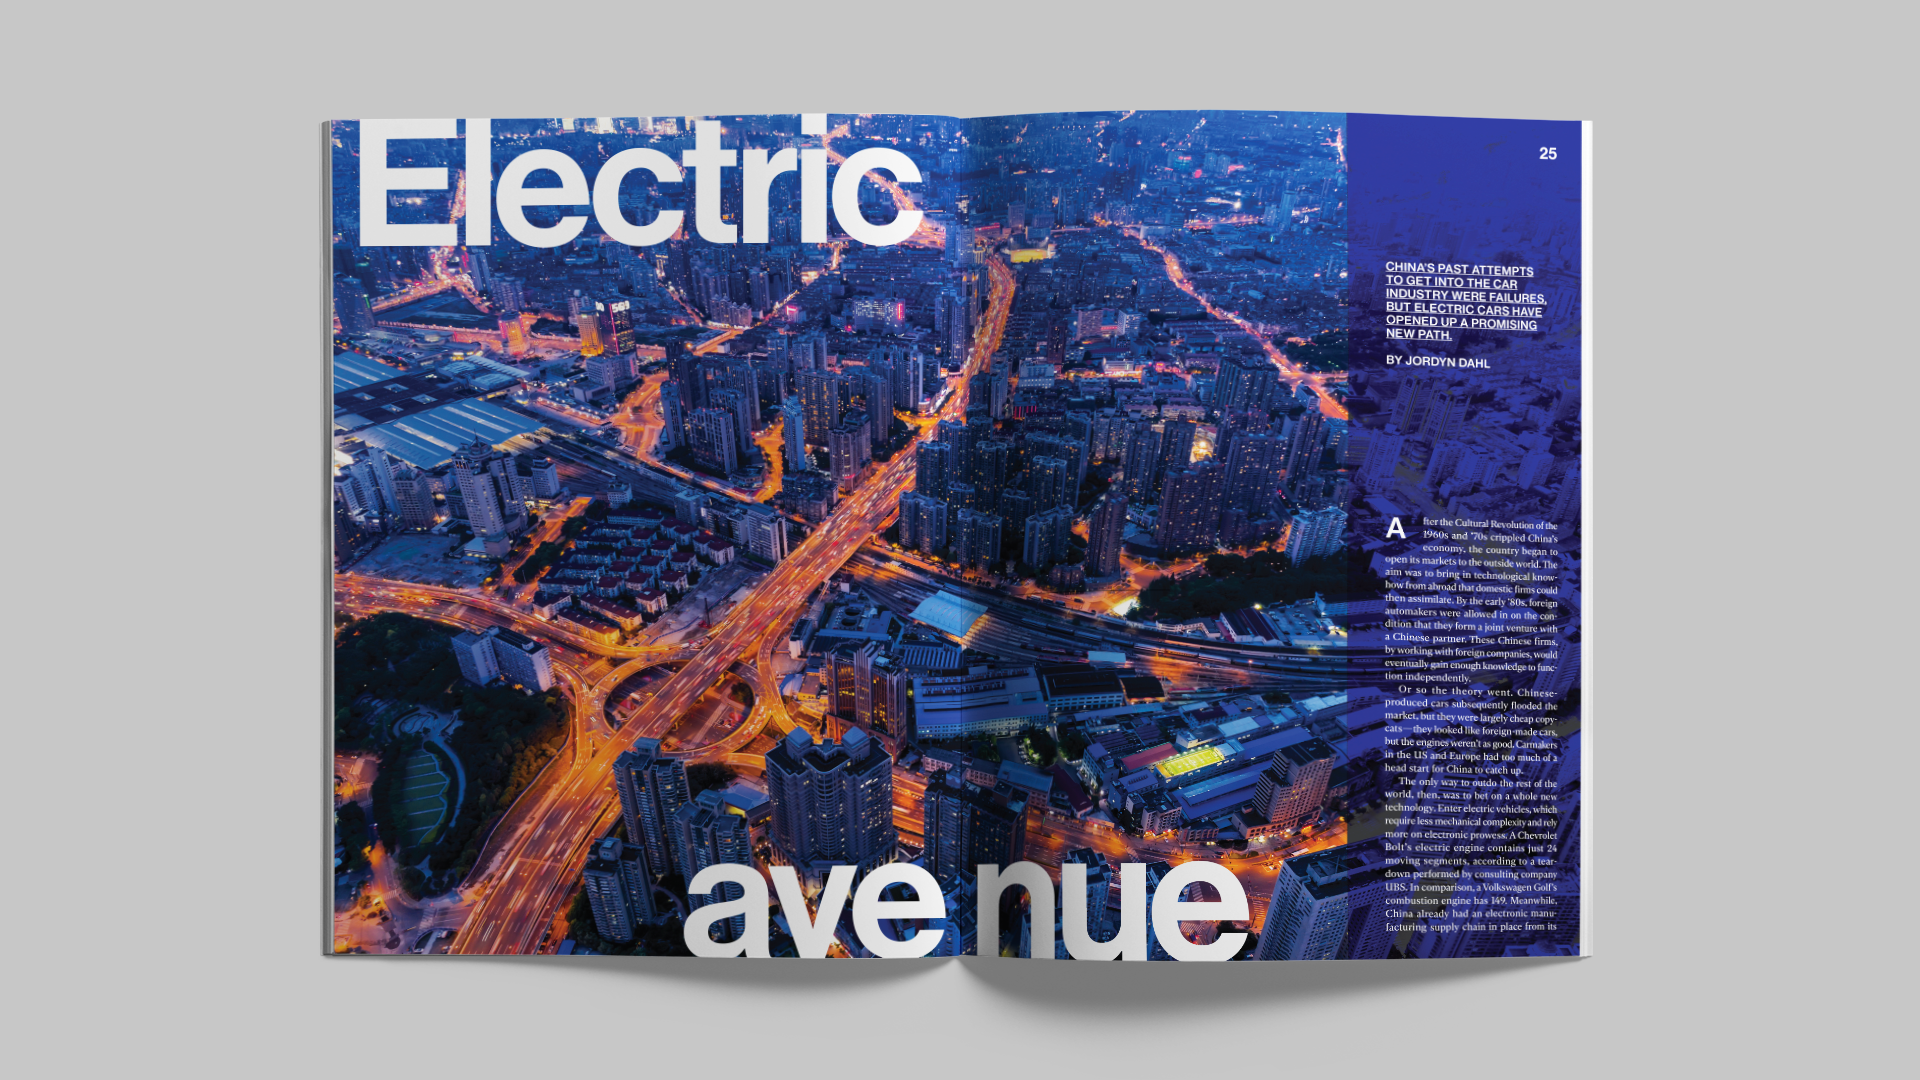 Electric-avenue-1.png